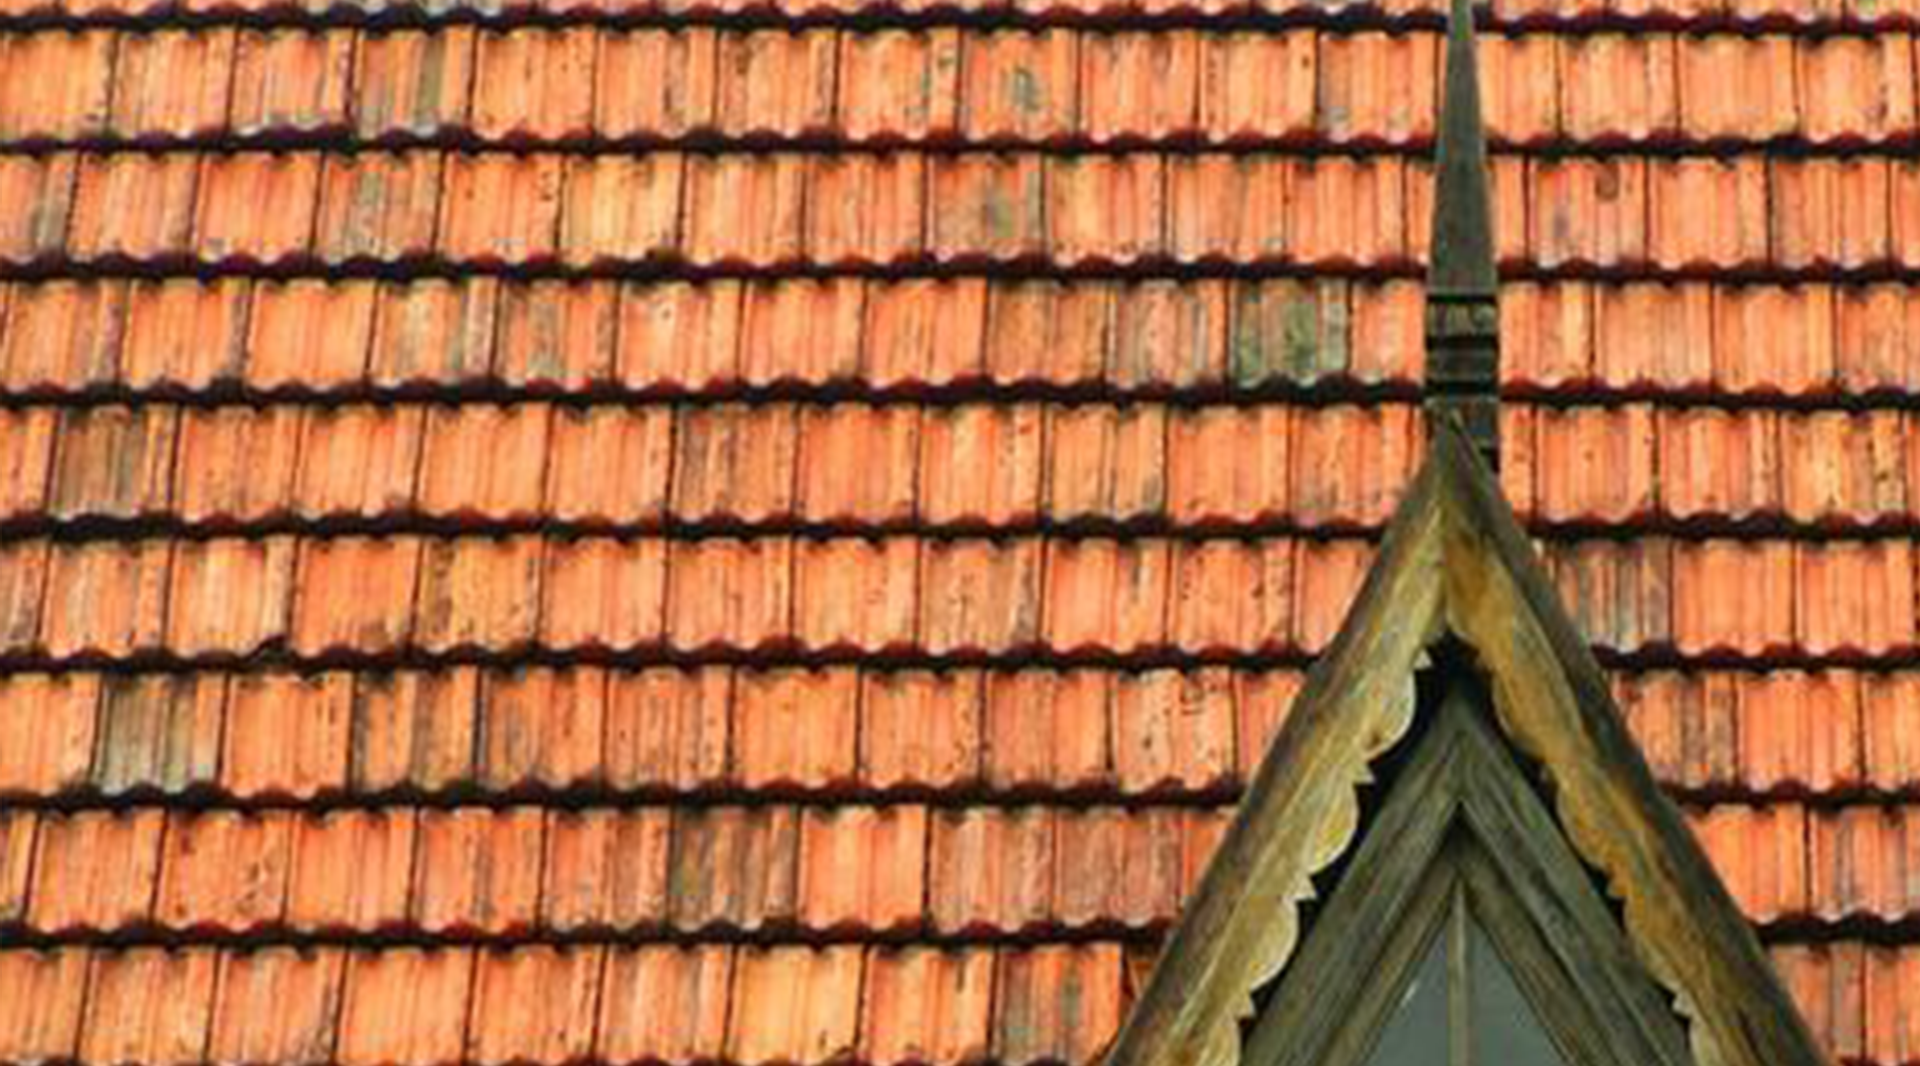 Double Roman roof tile kent roofing services rochester medway kent